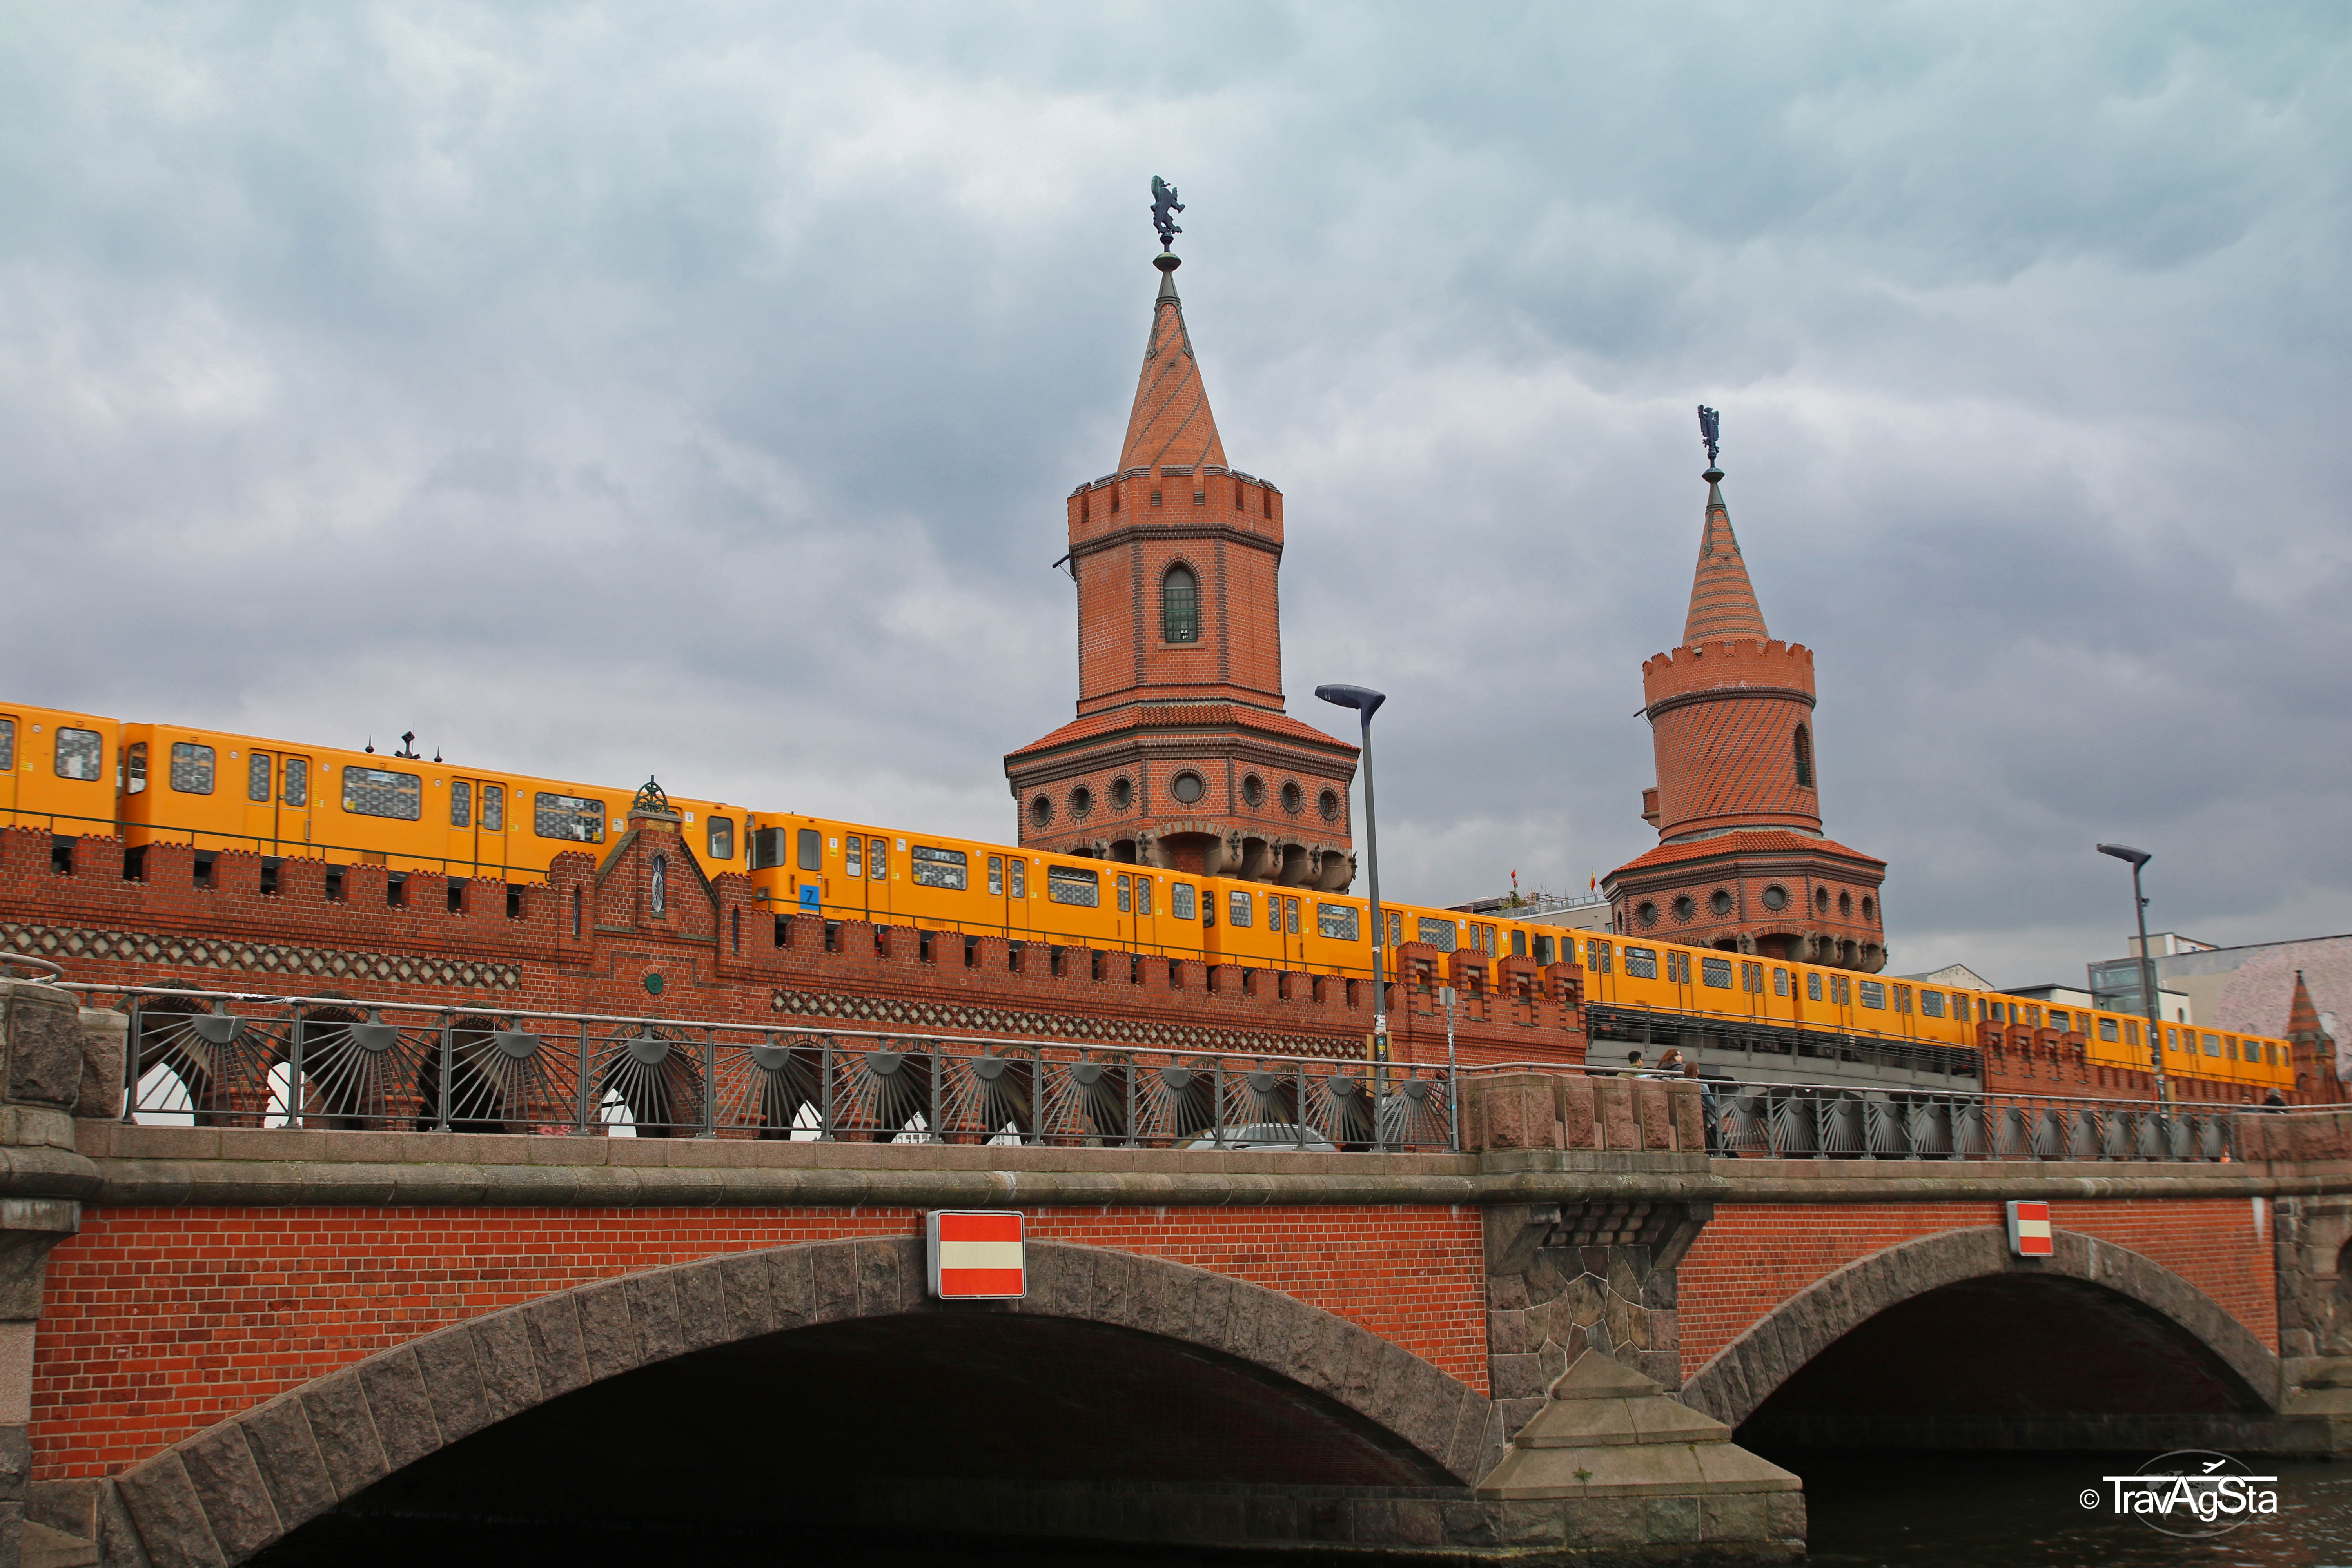 Berlin by day and night – visiting the Capital City for a weekend!